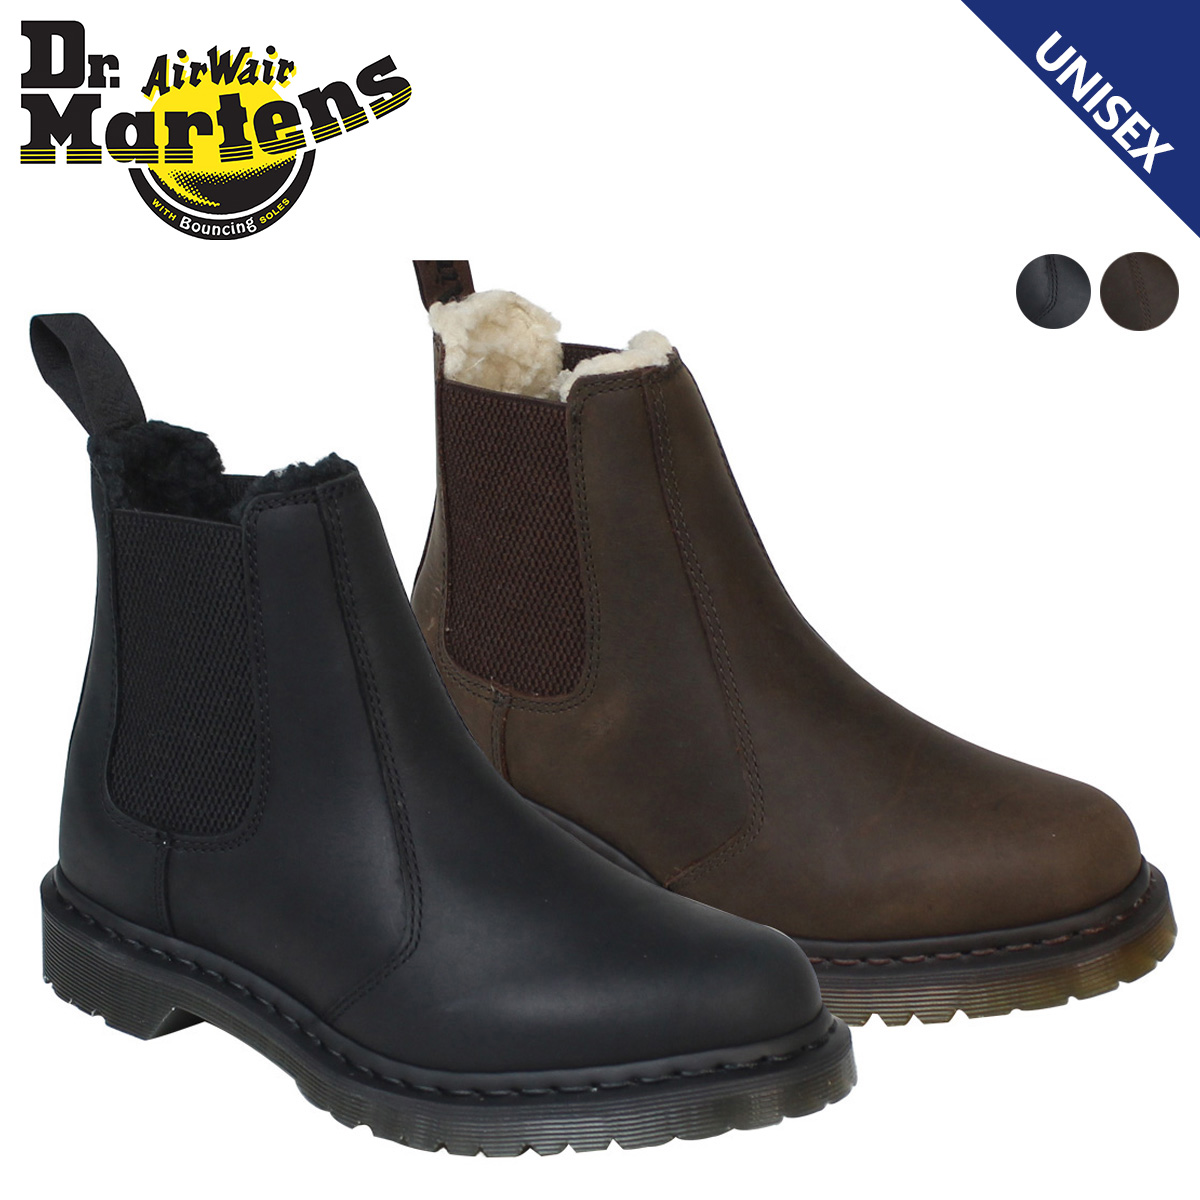 wholesale sales famous brand new lifestyle Dr.Martens doctor Martin side Gore boots Chelsea boot Lady's WOMENS LEONORE  CHELSEA BOOT R16719201 R16720001 men